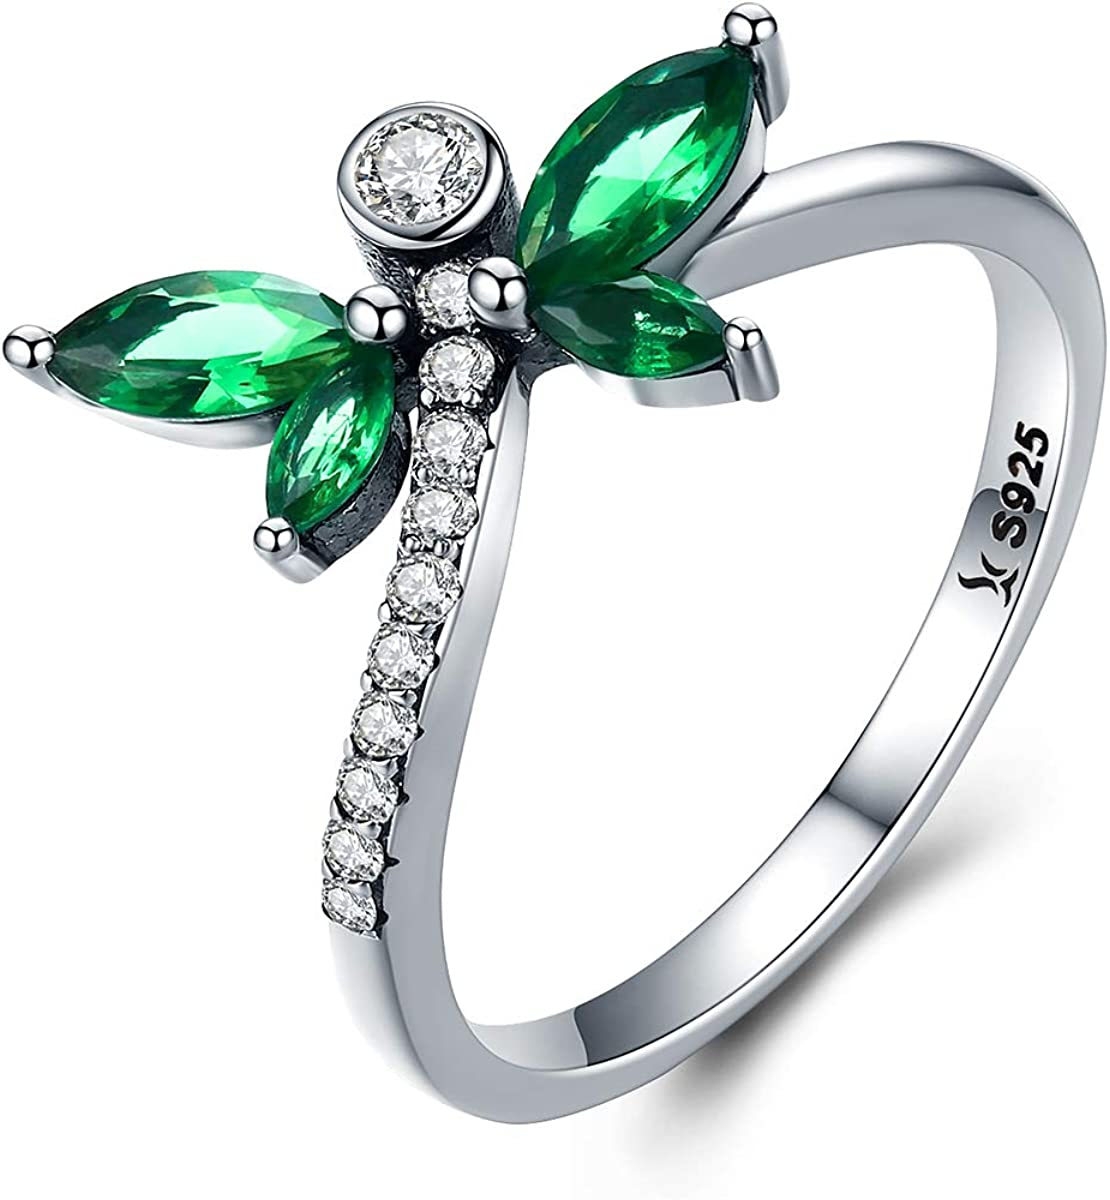 shipfree Petite Dragonfly 925 Sterling Cheap mail order shopping Ring Silver Green CZ